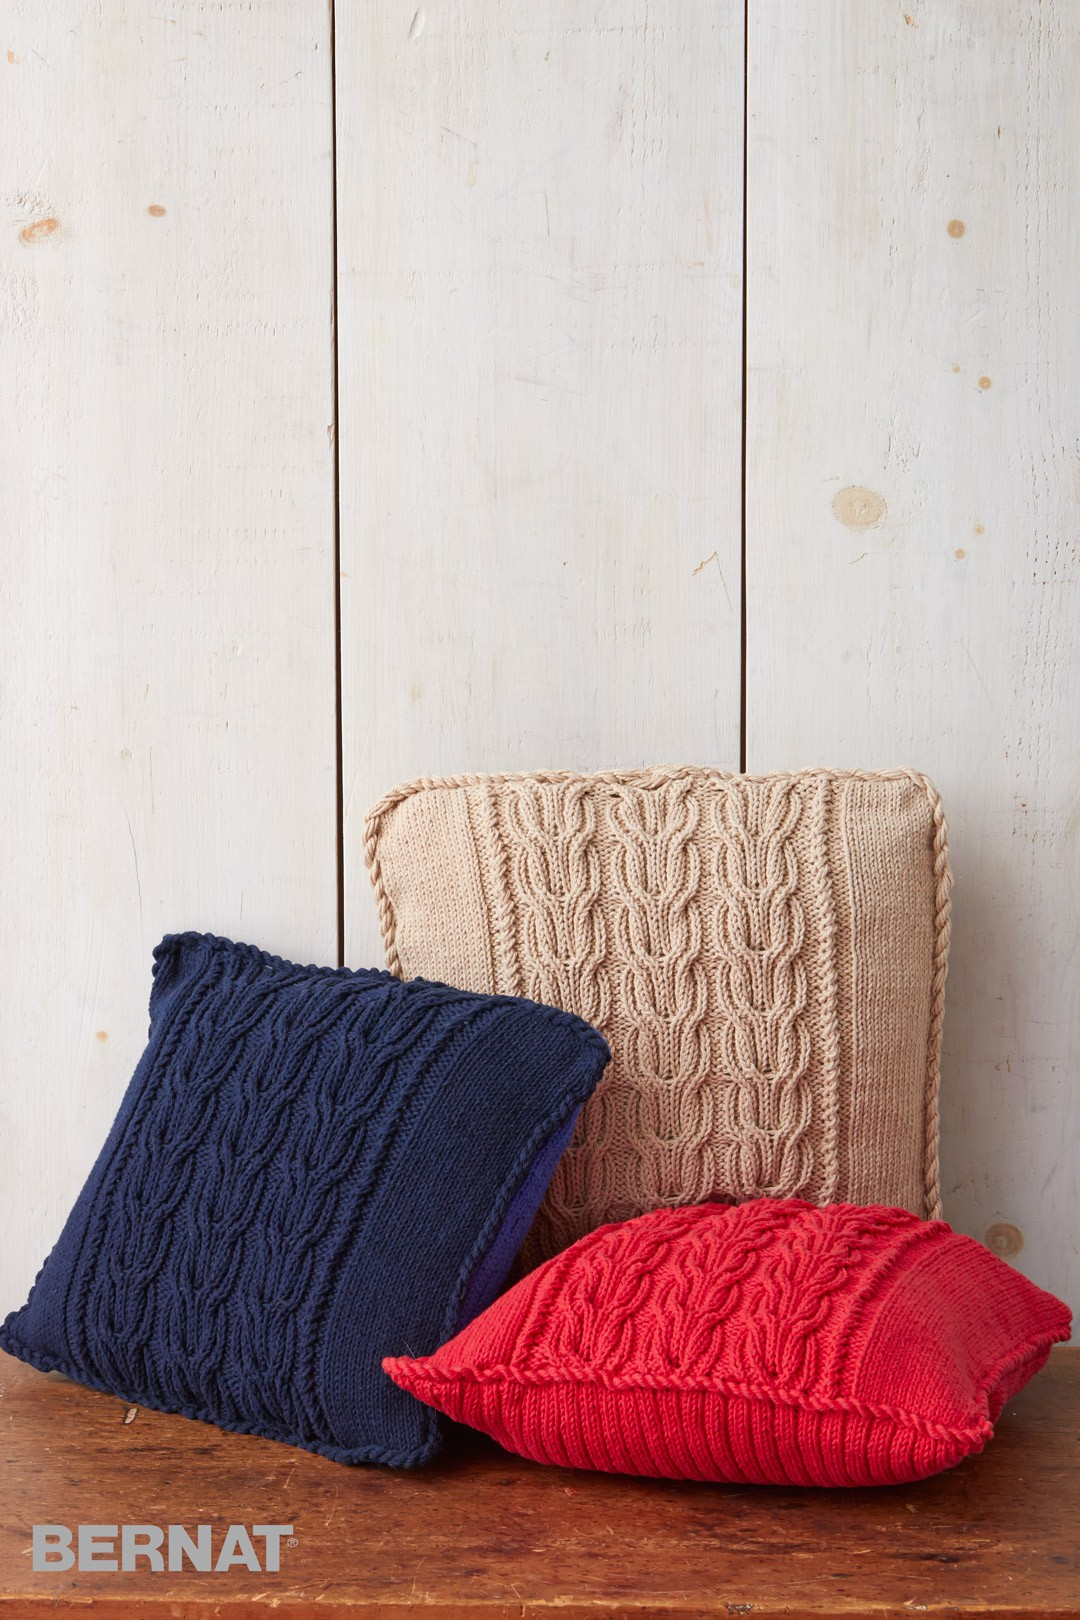 Cable Knit Pillow Pattern Free : Bernat Cable Knit Trio Pillows, Knit Pattern Yarnspirations